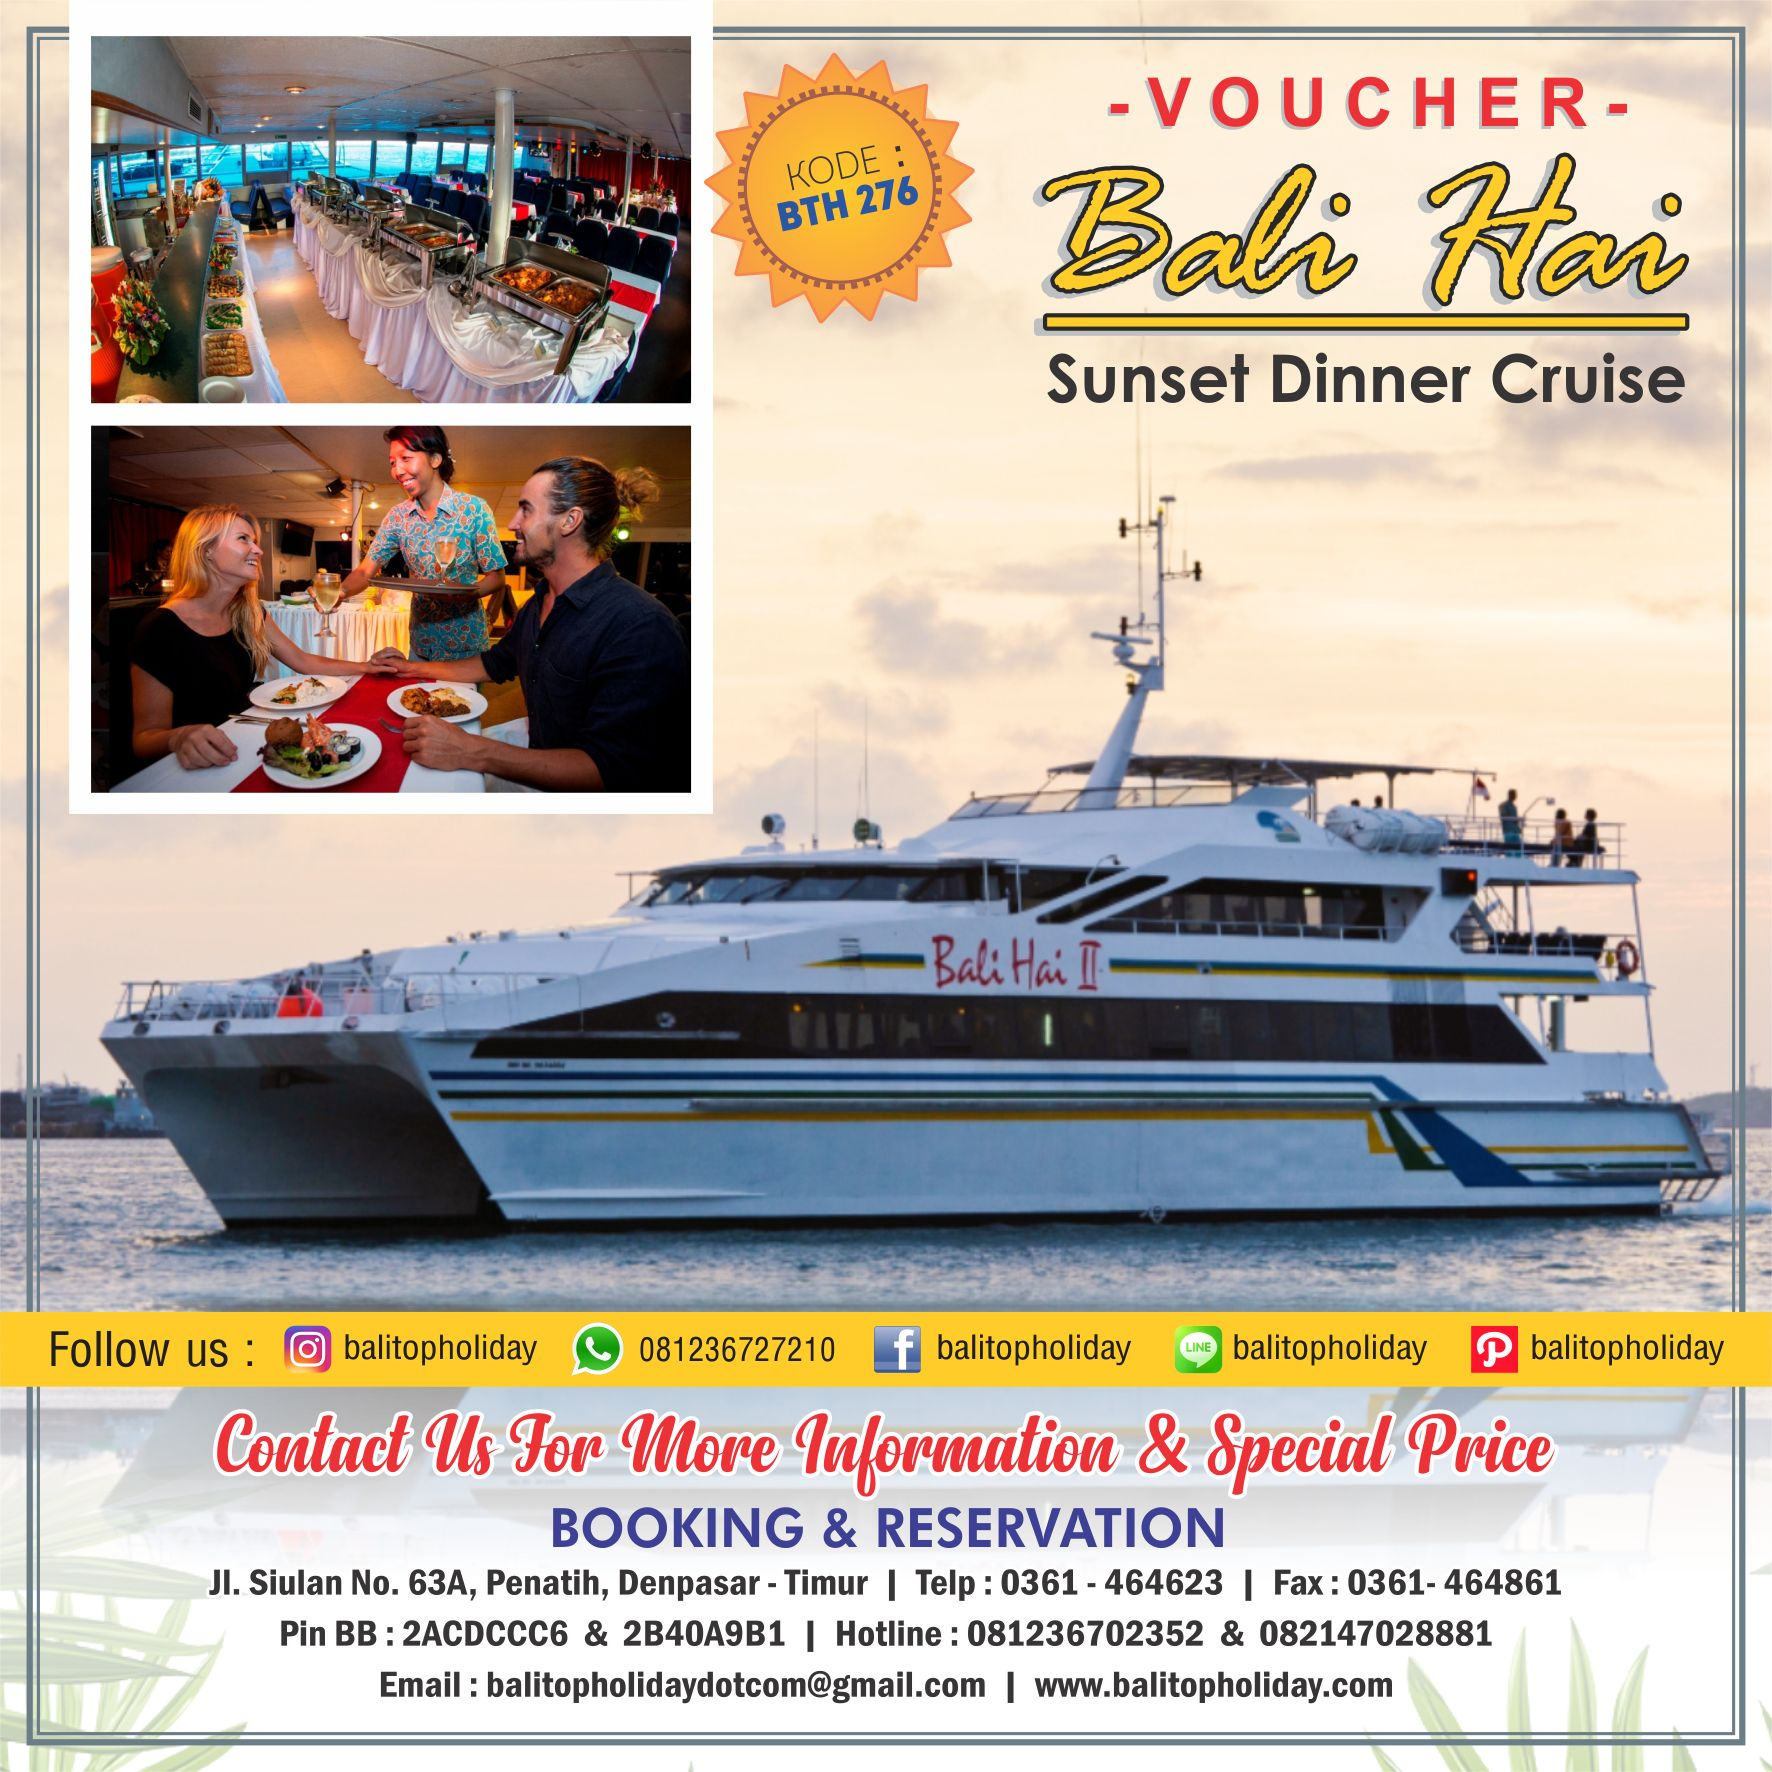 voucher bali hai sunset dinner cruise